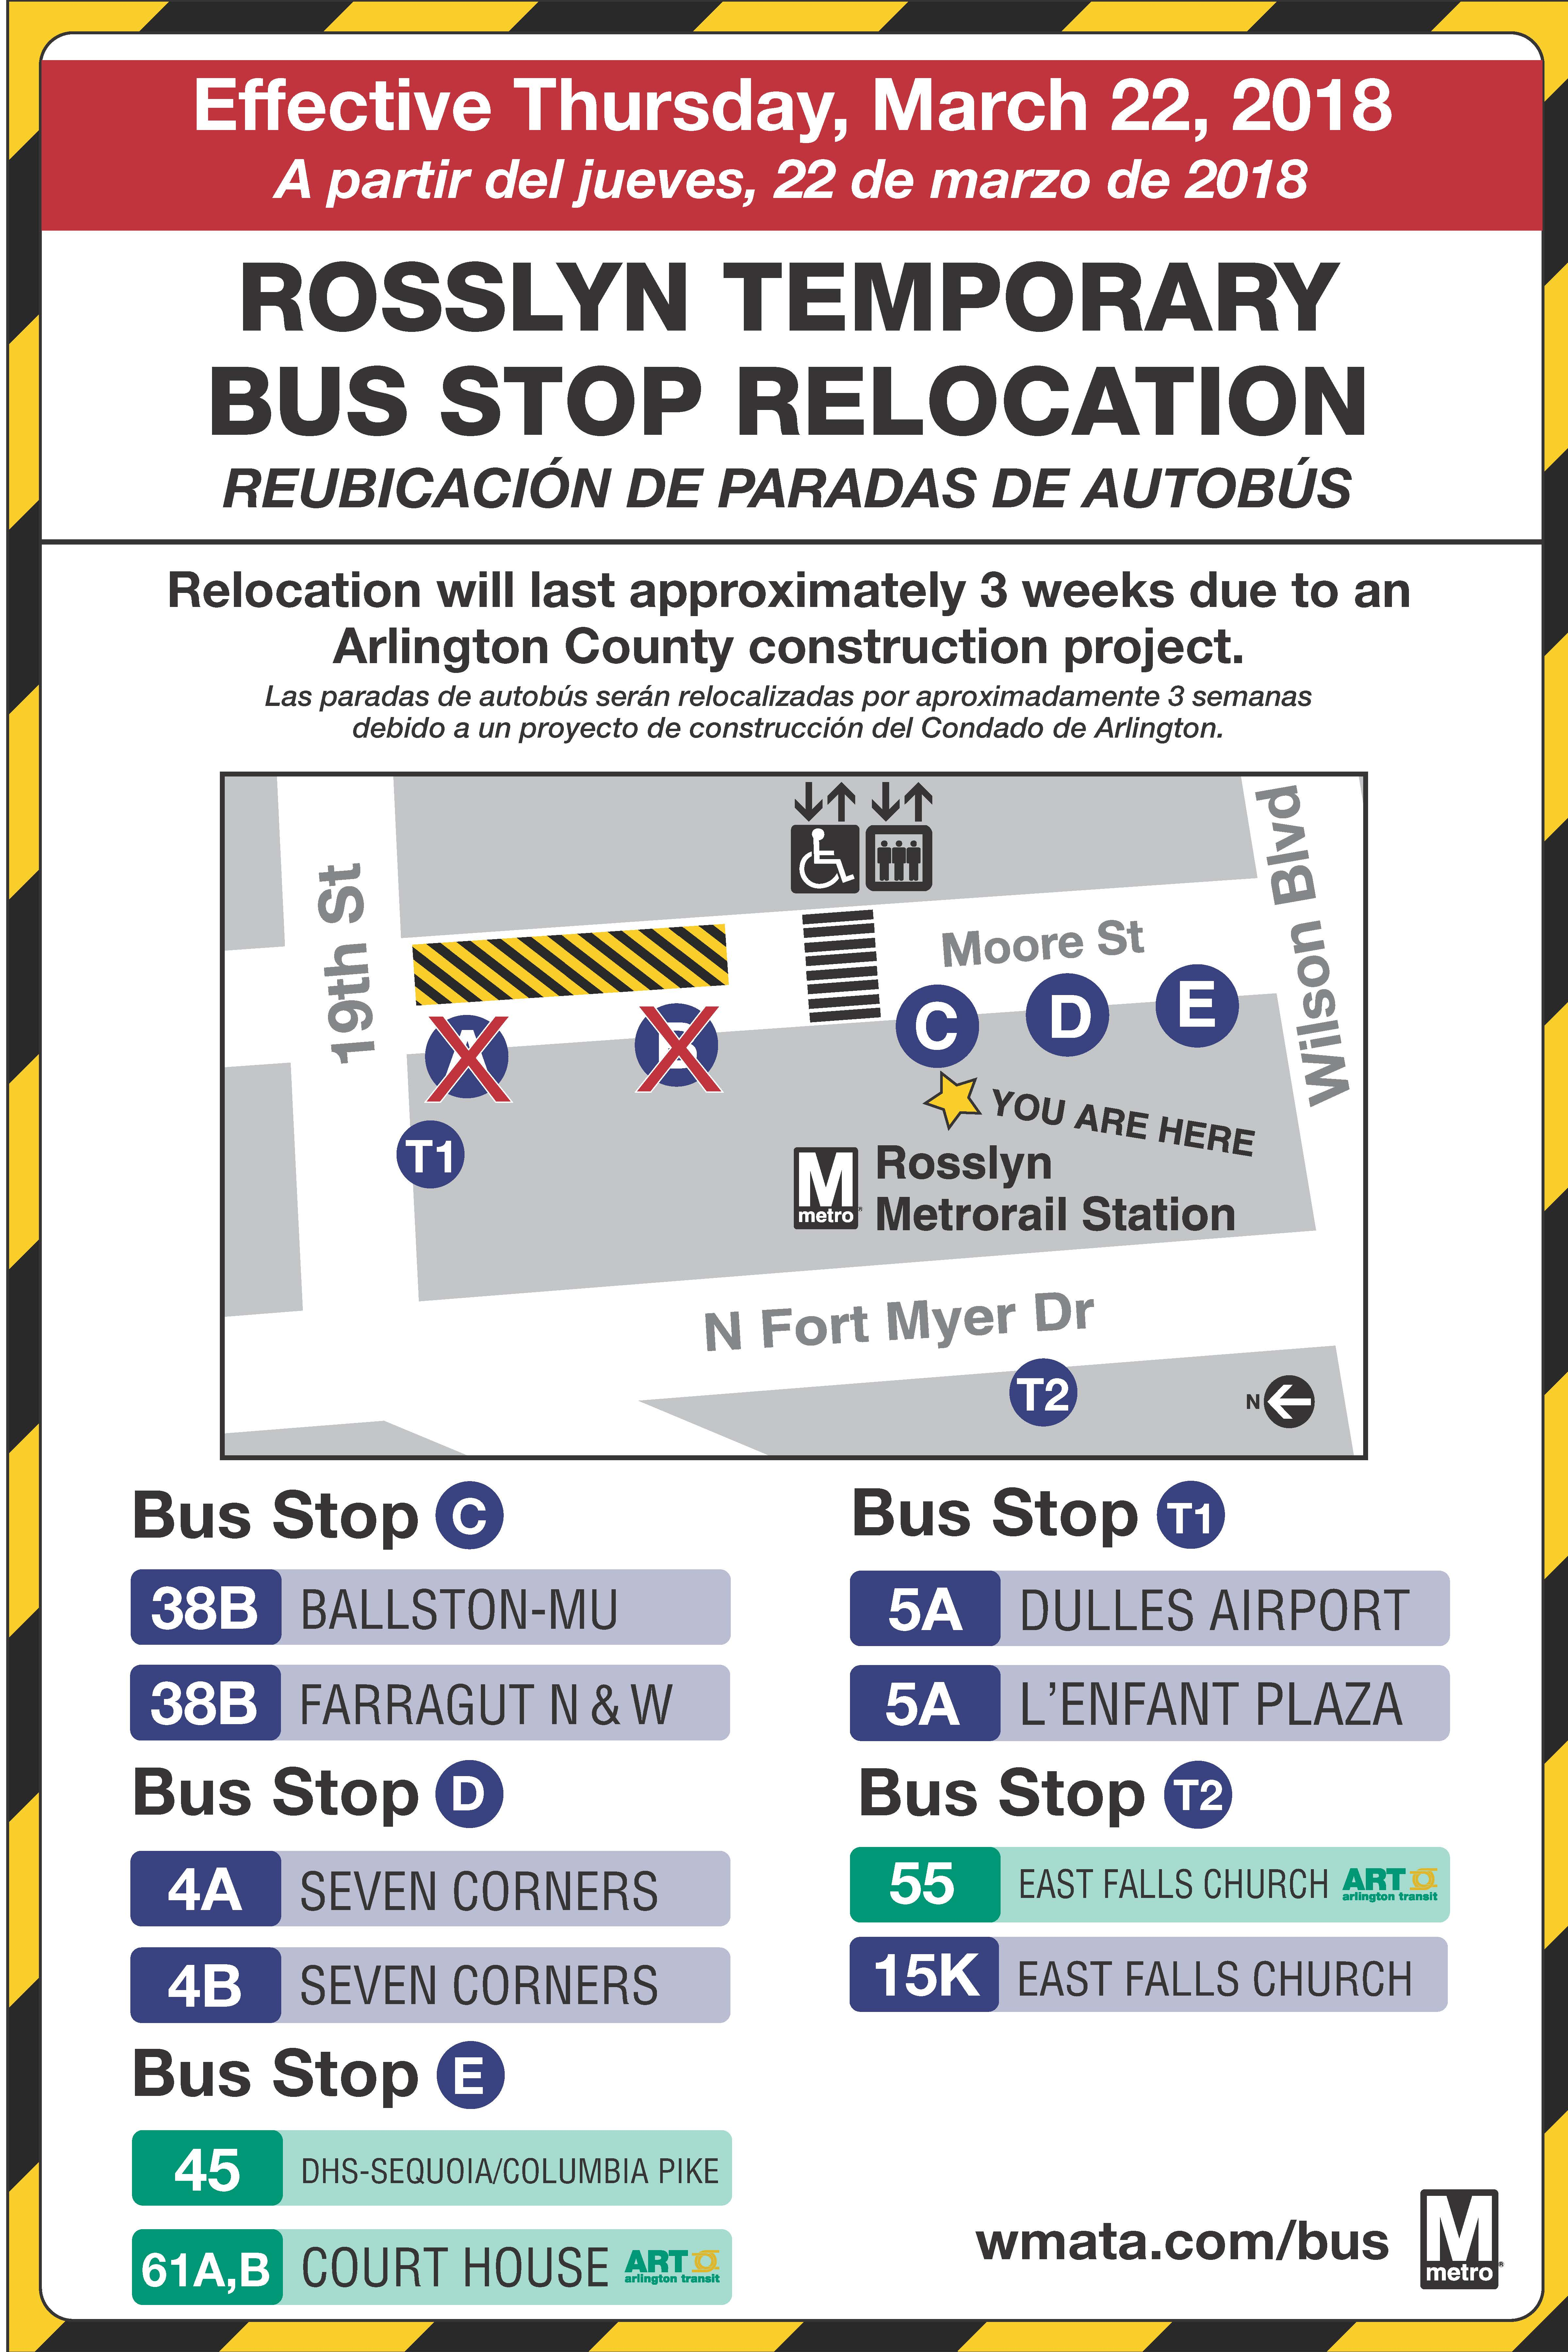 Rosslyn Bus Bay Relocation March 2018 Phase 2